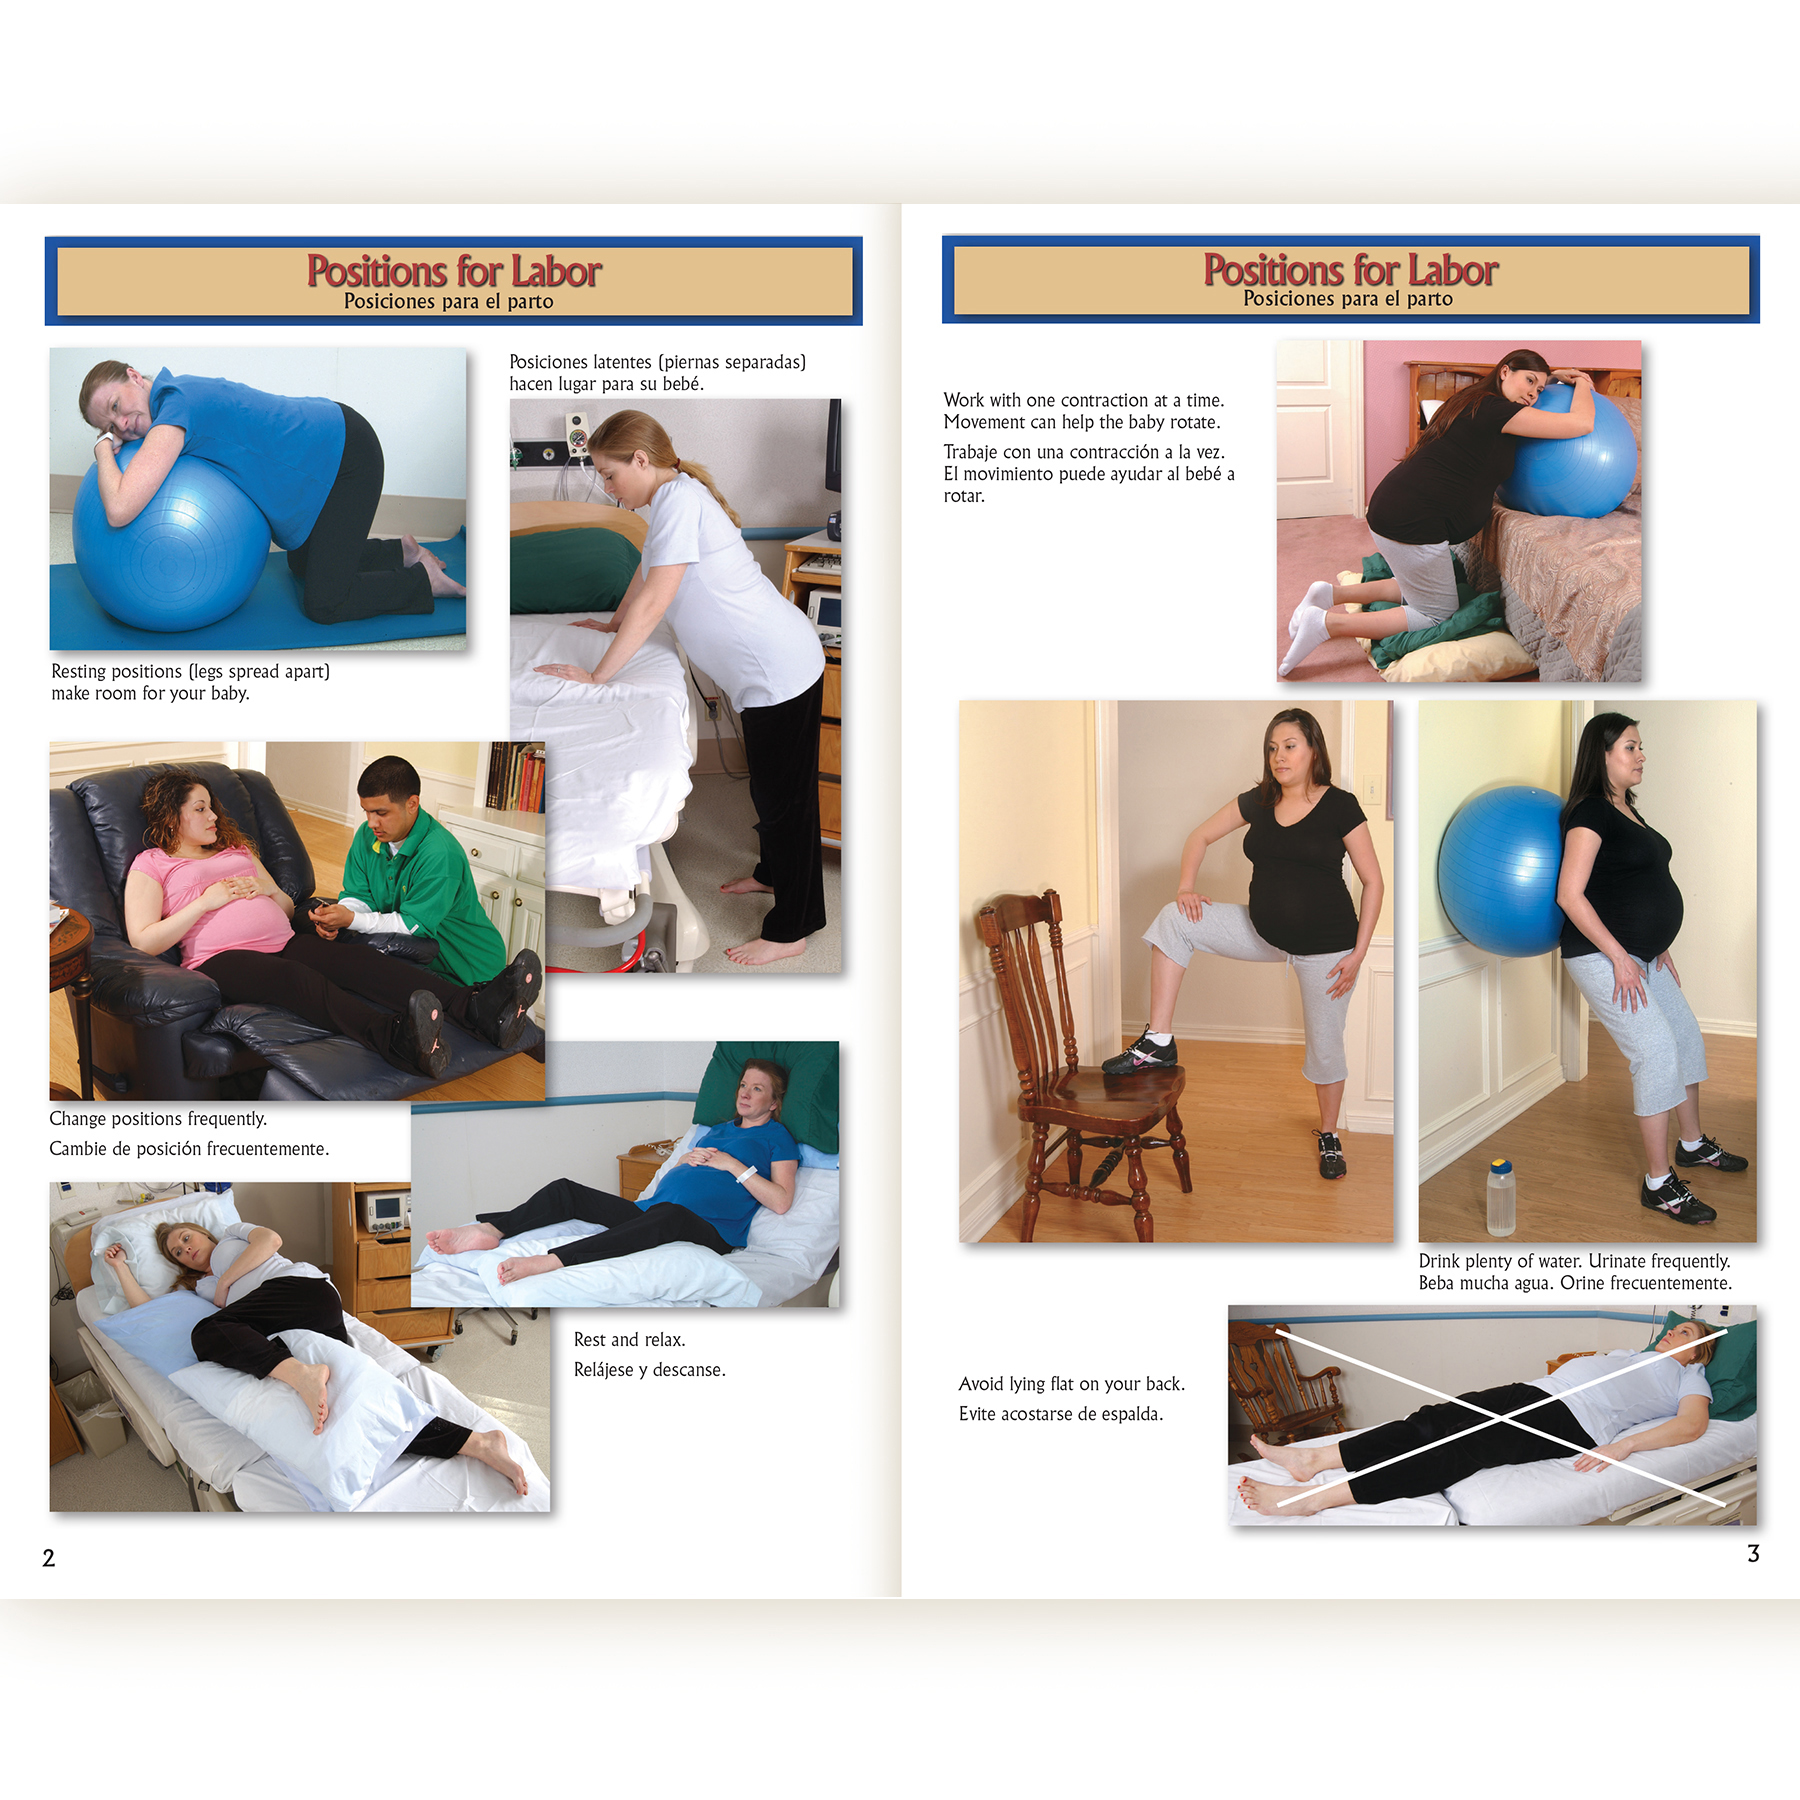 Birth Companion booklet English/Spanishrelieving back pain and changing positions pages, photographic reference of labor comfort measures, Childbirth Graphics, 38524